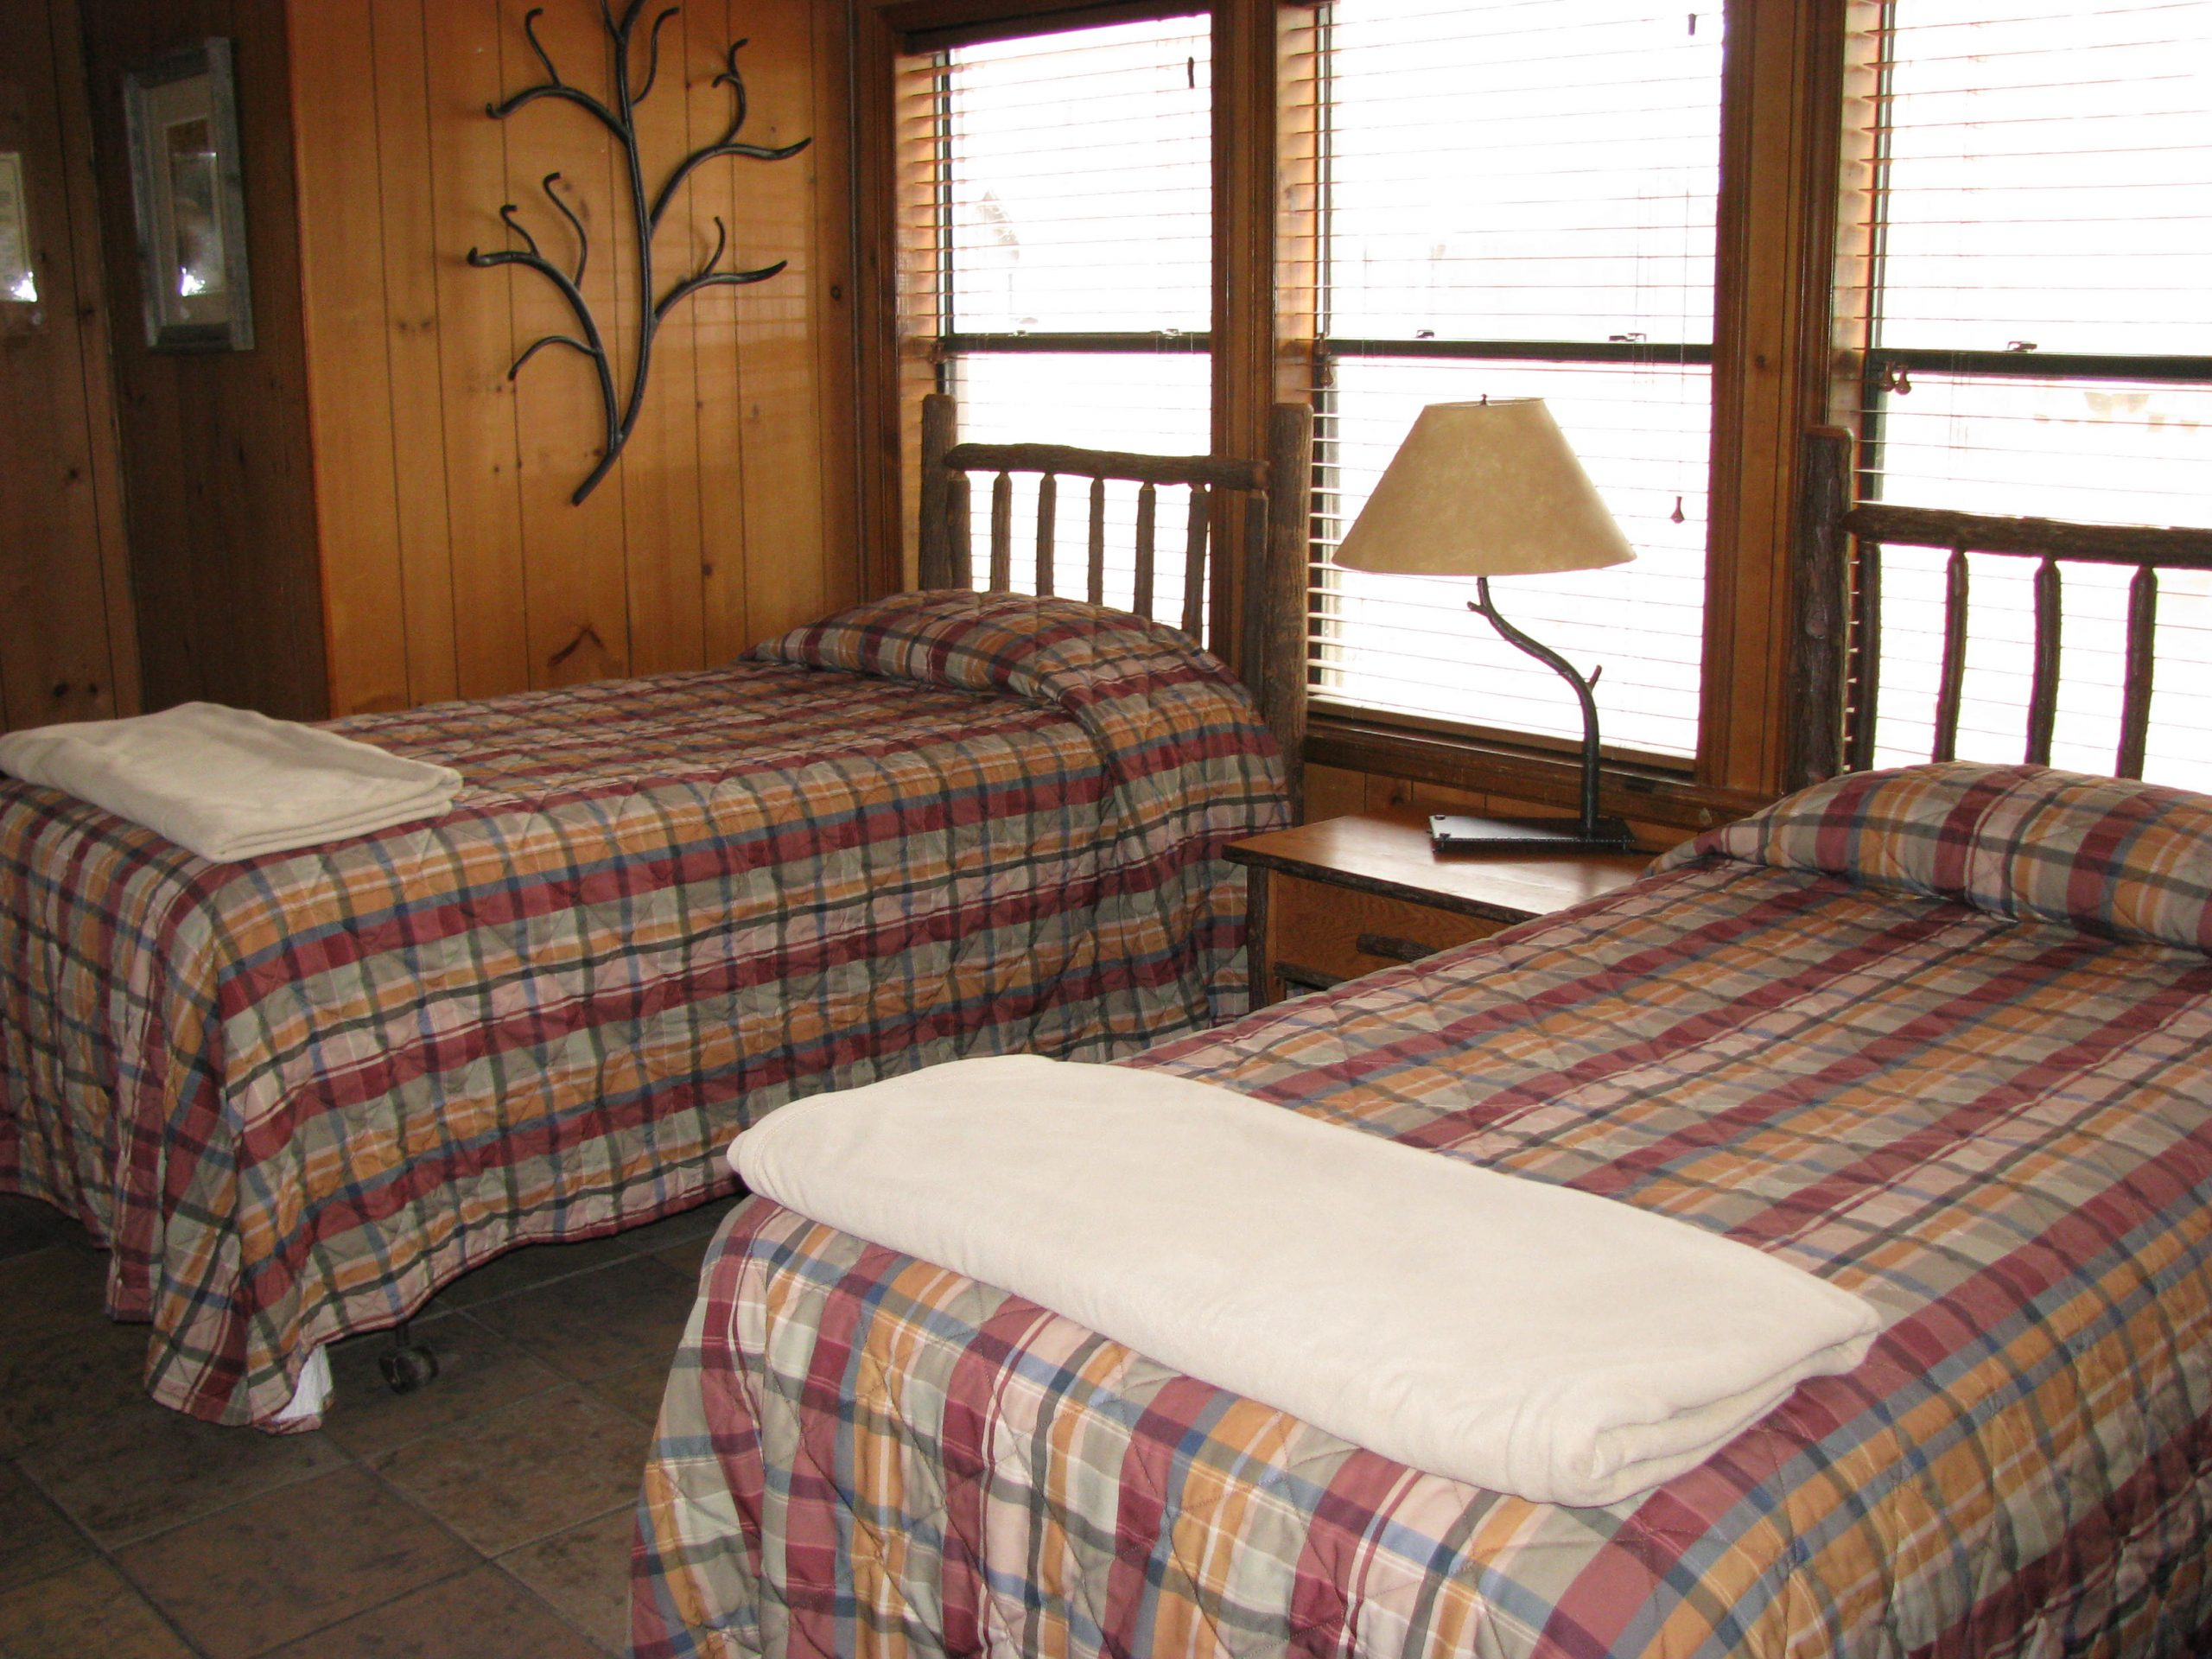 cabin-pictures-050-jpg